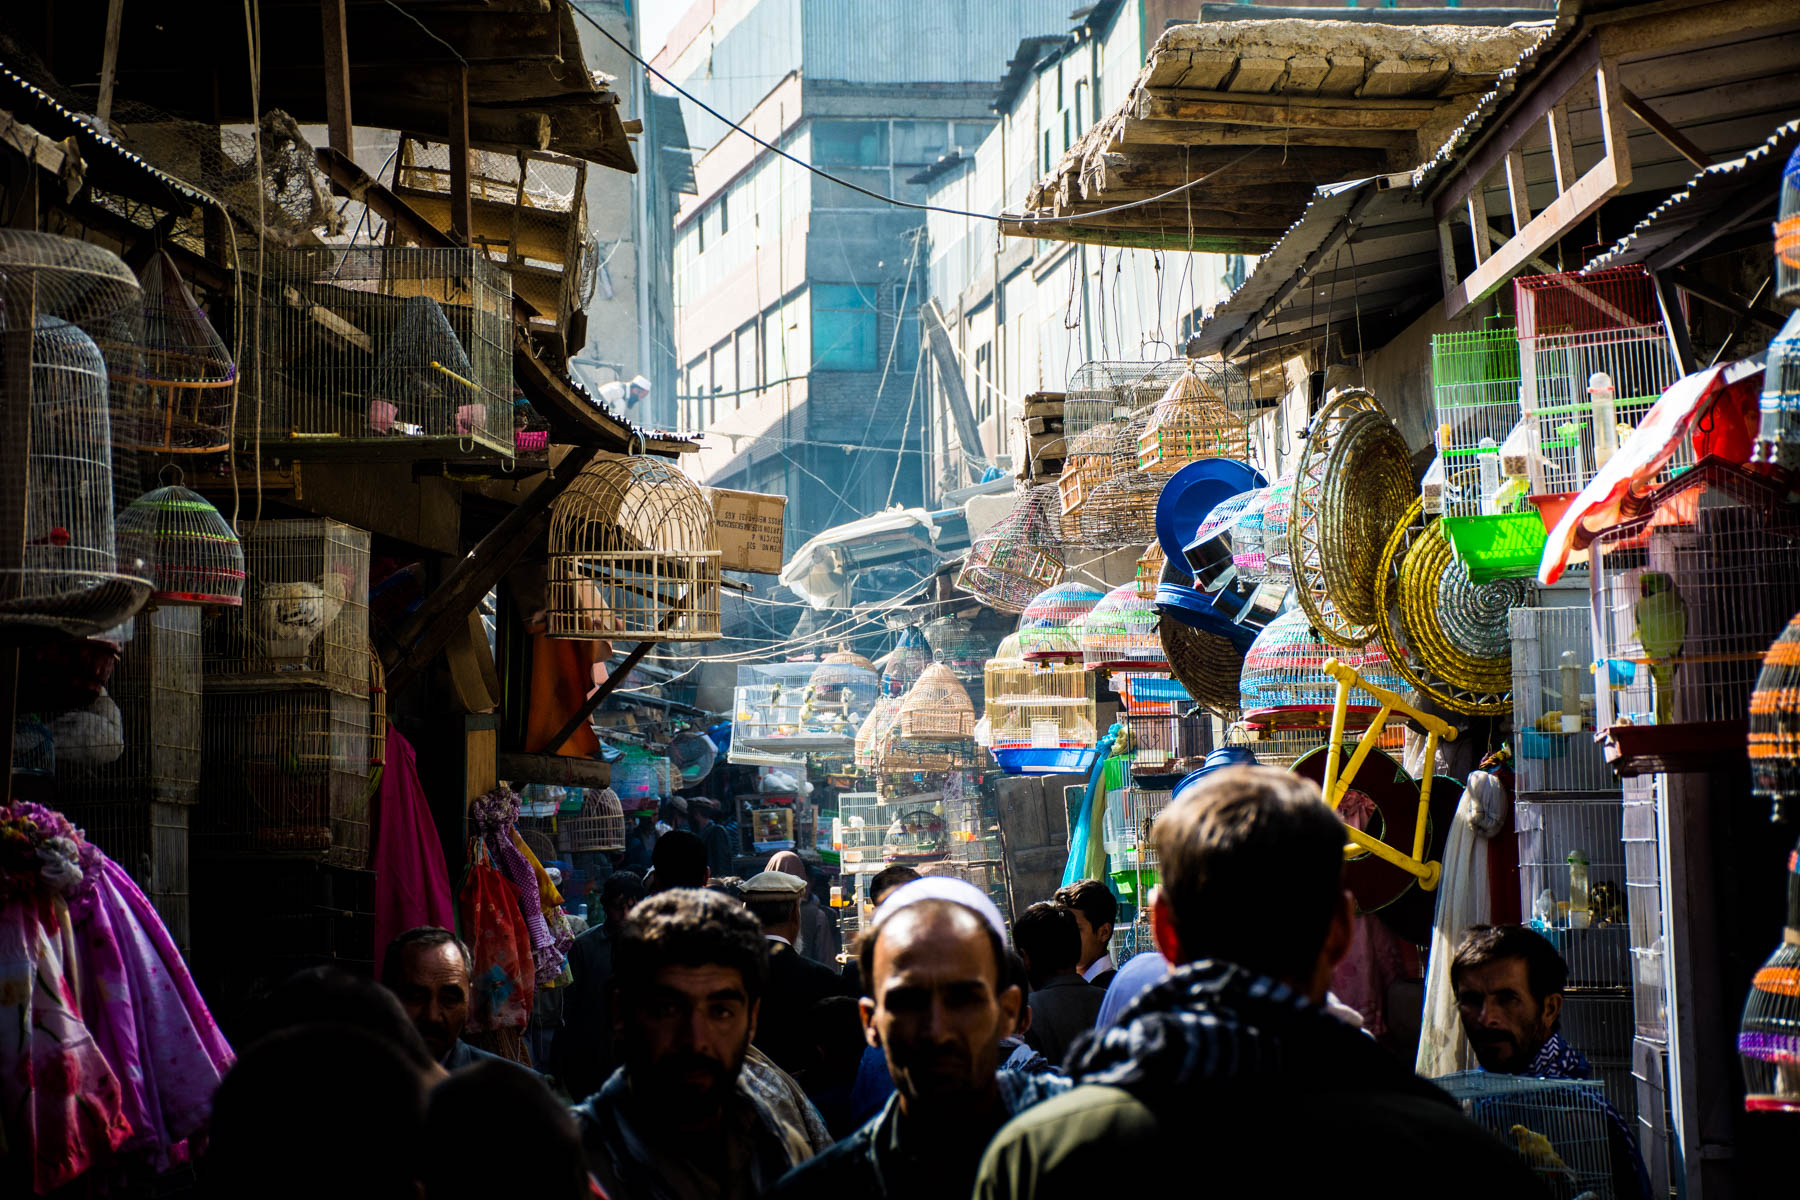 Ka Faroshi Bird Market in Kabul, Afghanistan - Lost With Purpose